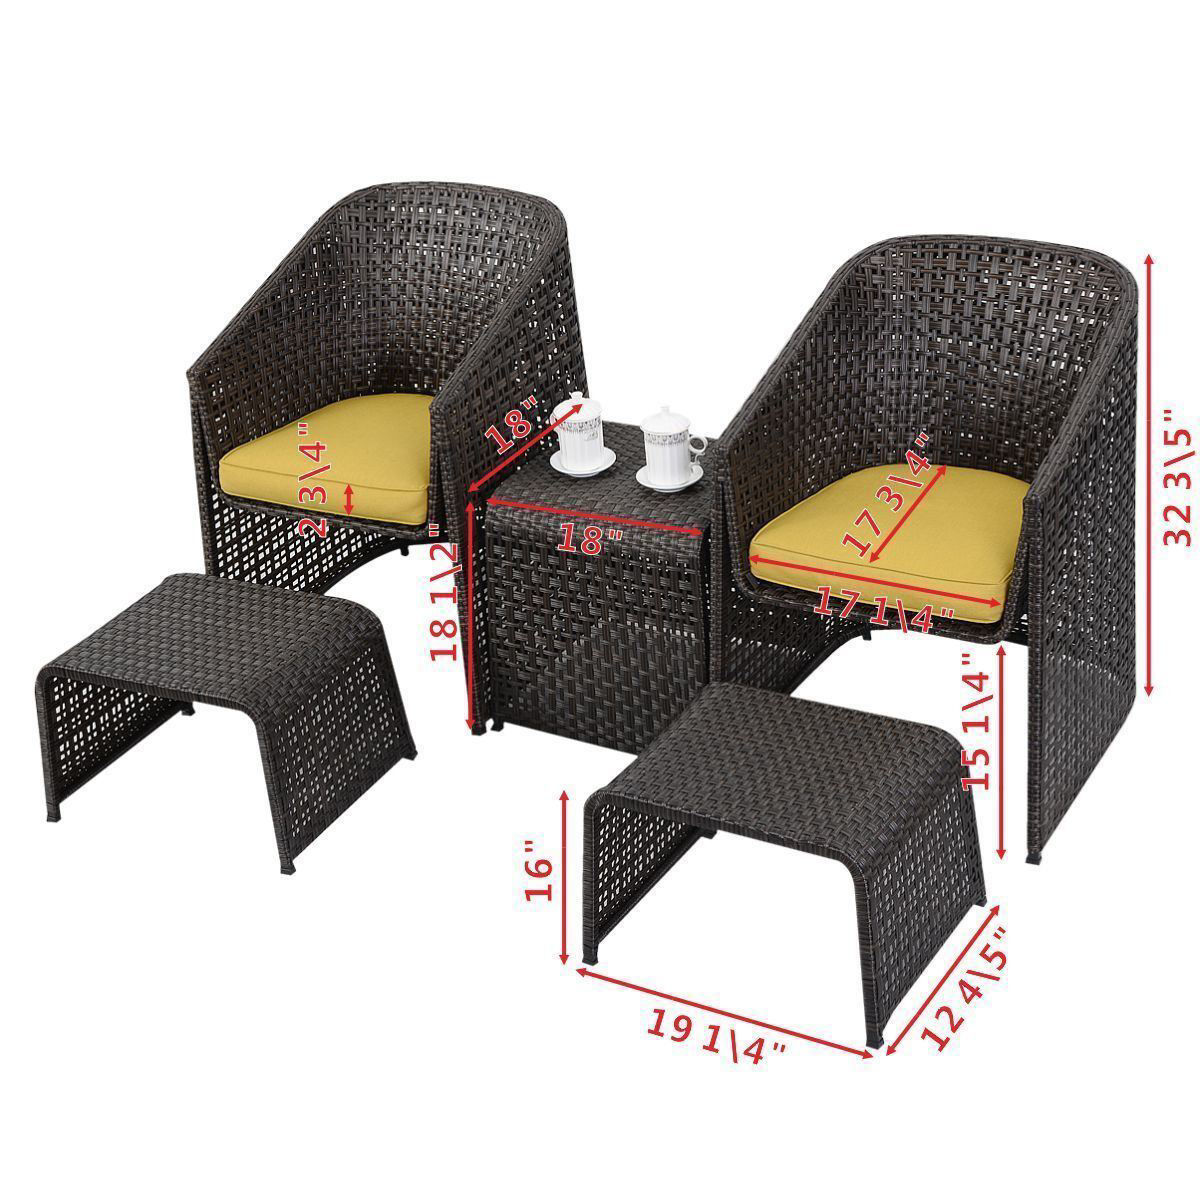 Picture of Outdoor Rattan Furniture Set with Footstools 5 Piece